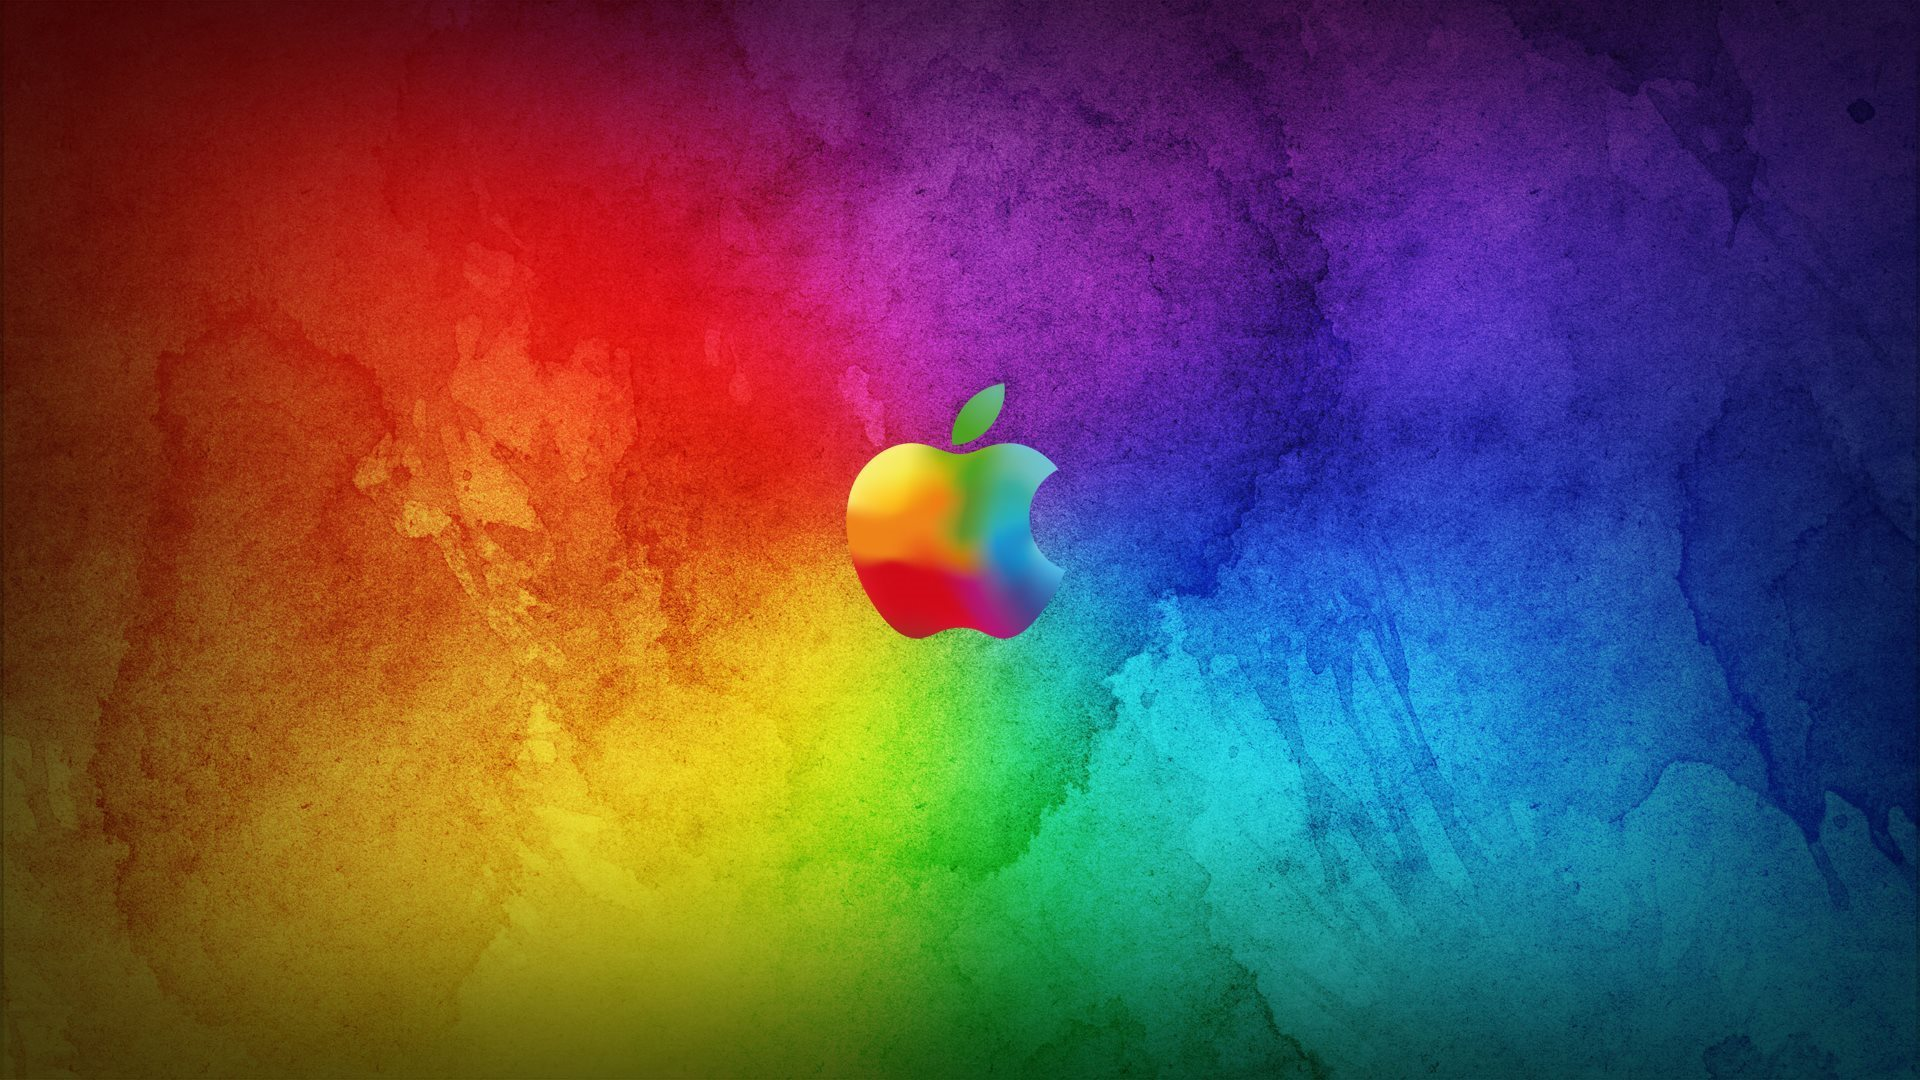 Hd Mac Desktop Backgrounds Wallpaper